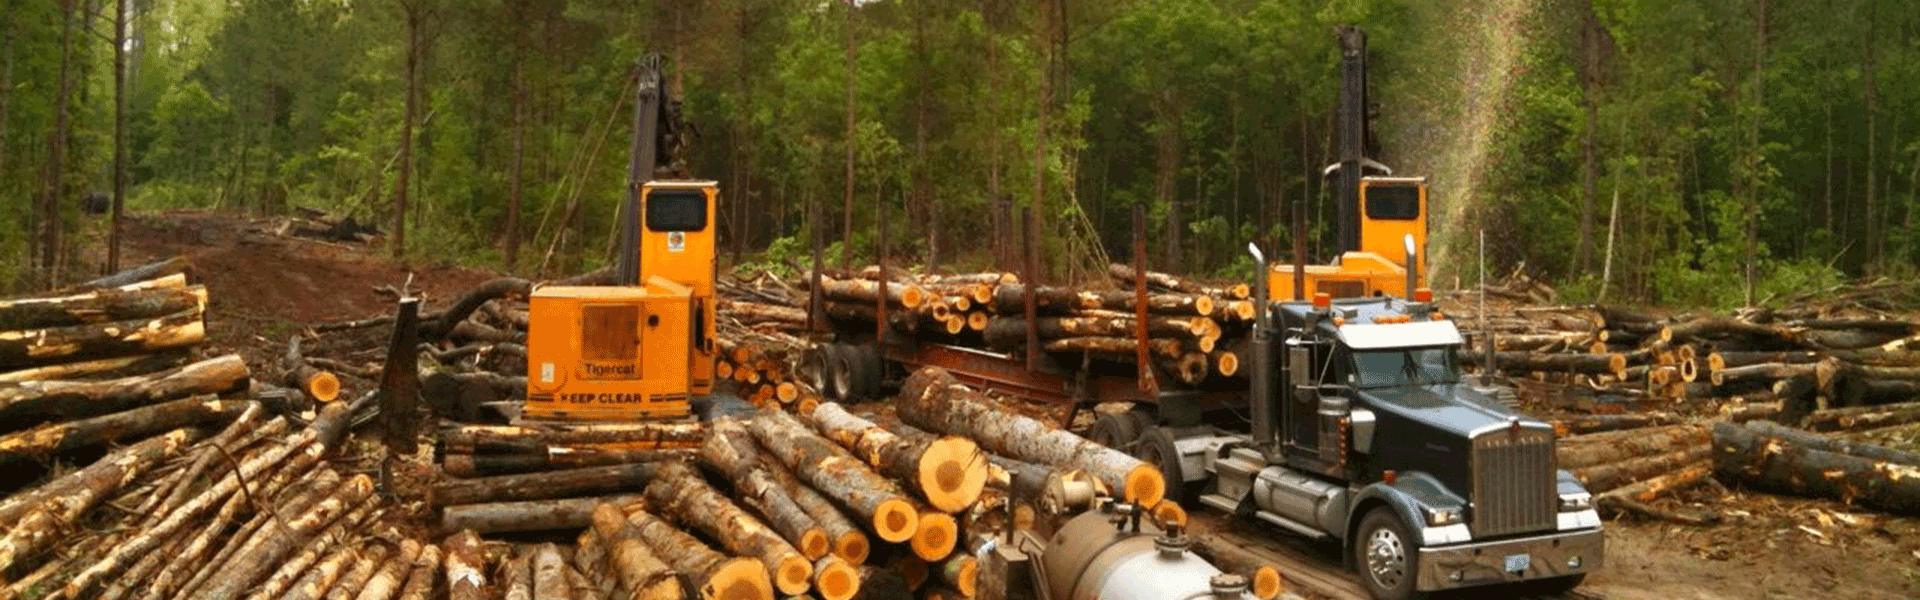 swamp-loggers-cutting-trees-and-preparing-to-haul-logs-away.png